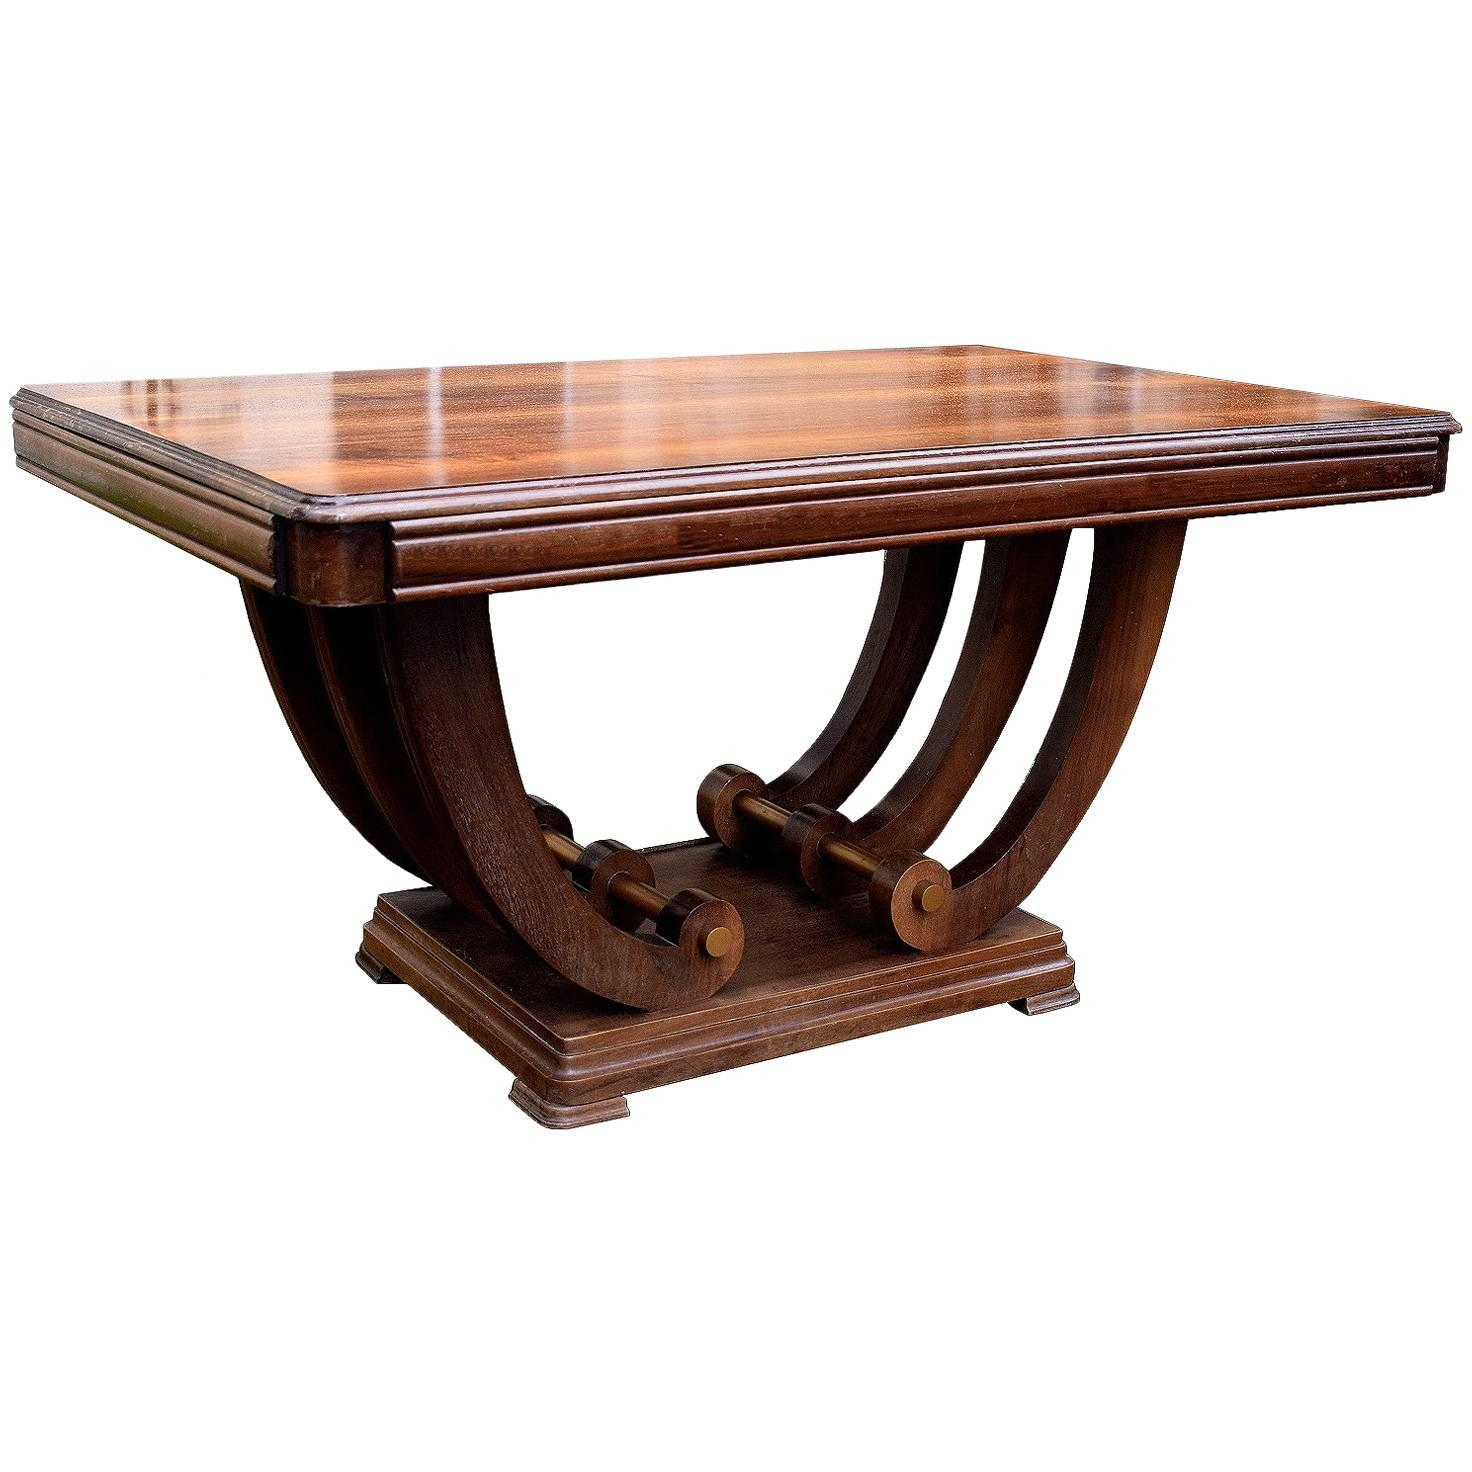 1930s Art Deco Solid Walnut Dining Table